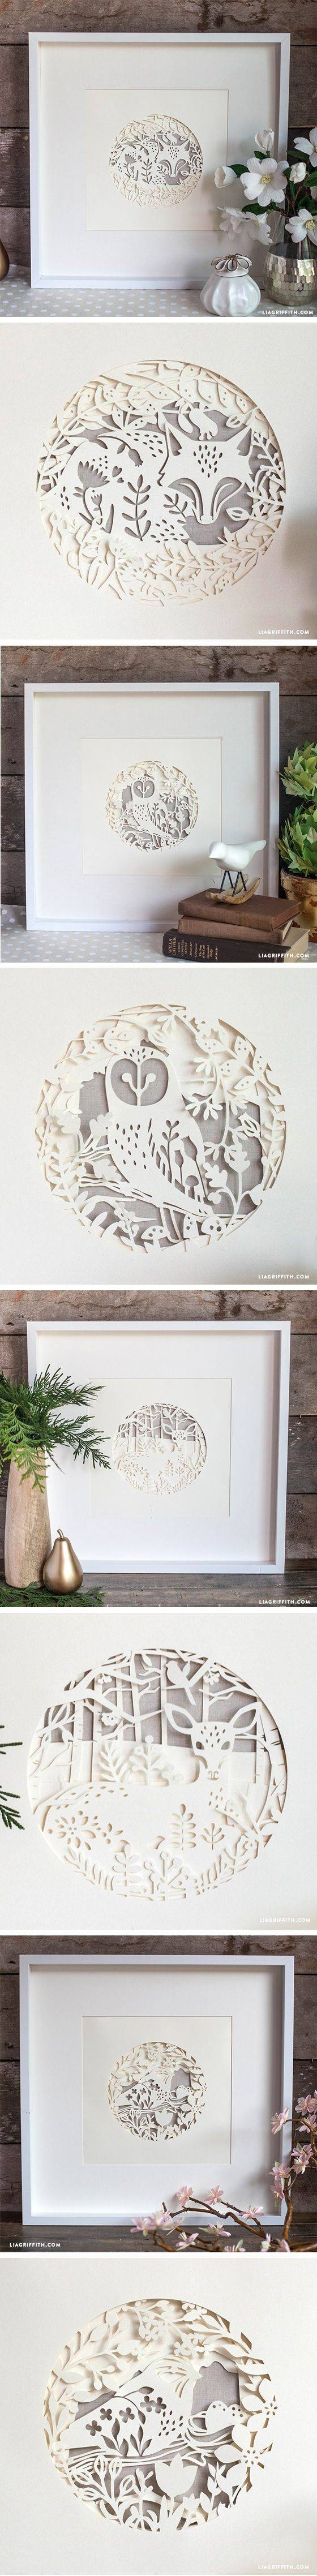 25+ Unique Paper Wall Art Ideas On Pinterest | Toilet Paper Roll In Recent 3D Triangle Wall Art (View 3 of 20)